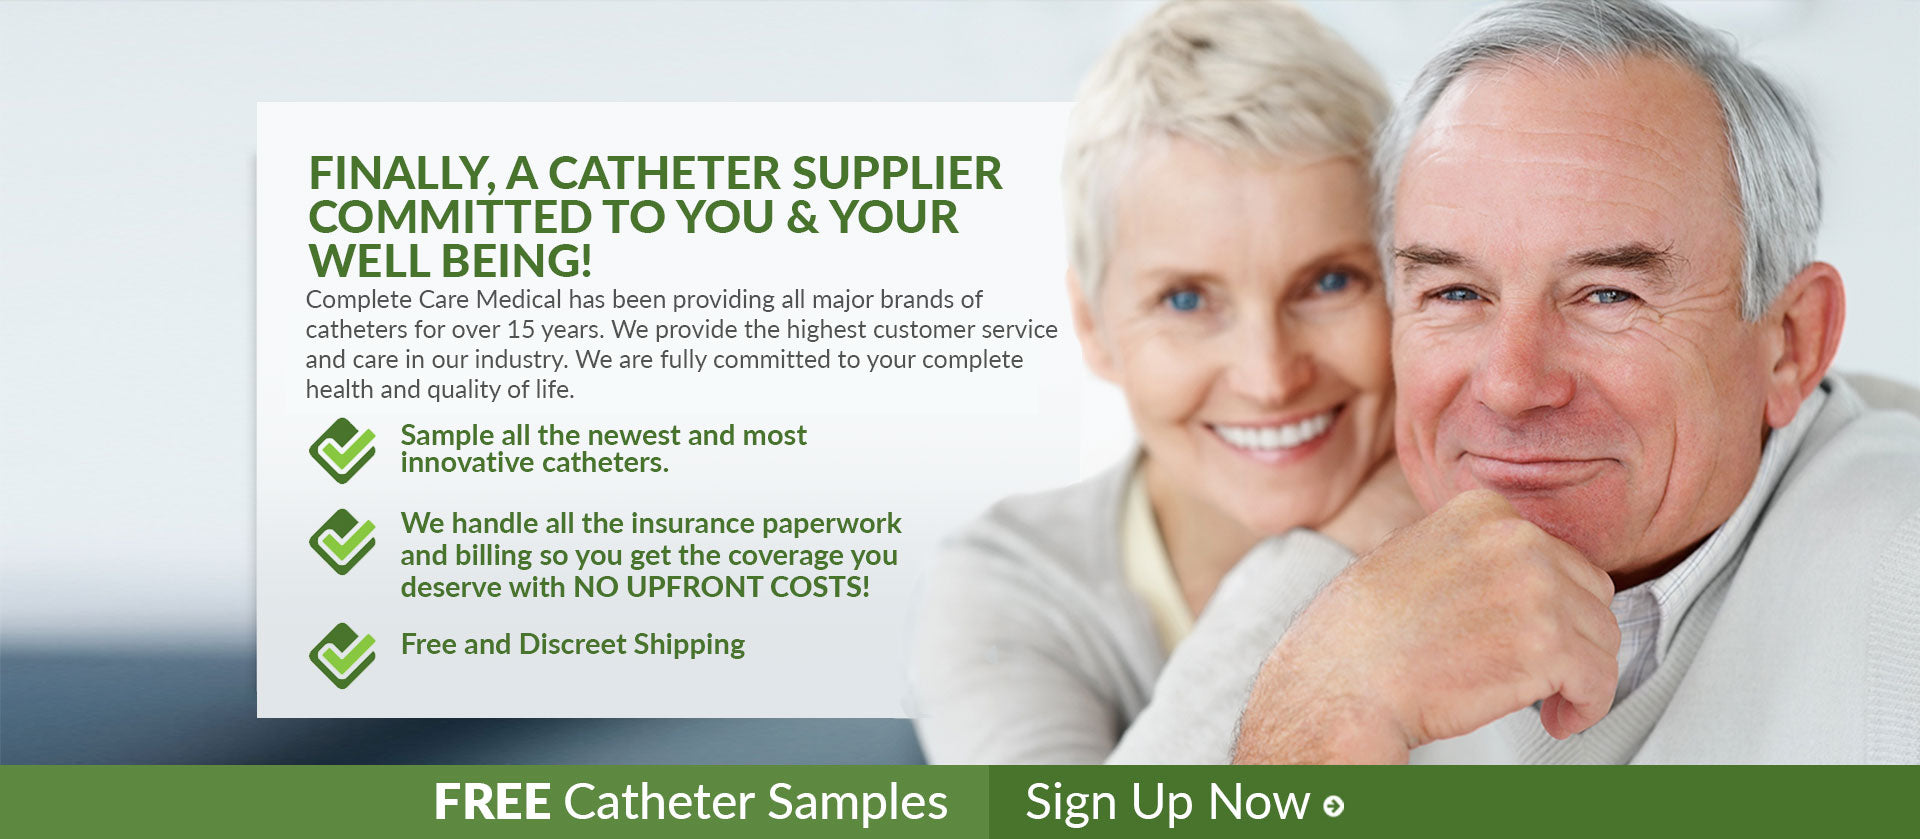 Finally, A Catheter Supplier Committed To You & Your Well Being! Complete Care Medical has been providing all major brands of catheters for over 15 years. We provide the highest customer service and care in our industry. We are fully committed to your complete health and quality of life. Sample all the newest and most innovative catheters. We handle all the insurance paperwork and billing so you get the coverage you deserve with NO UPFRONT COSTS! Free and Discreet Shipping